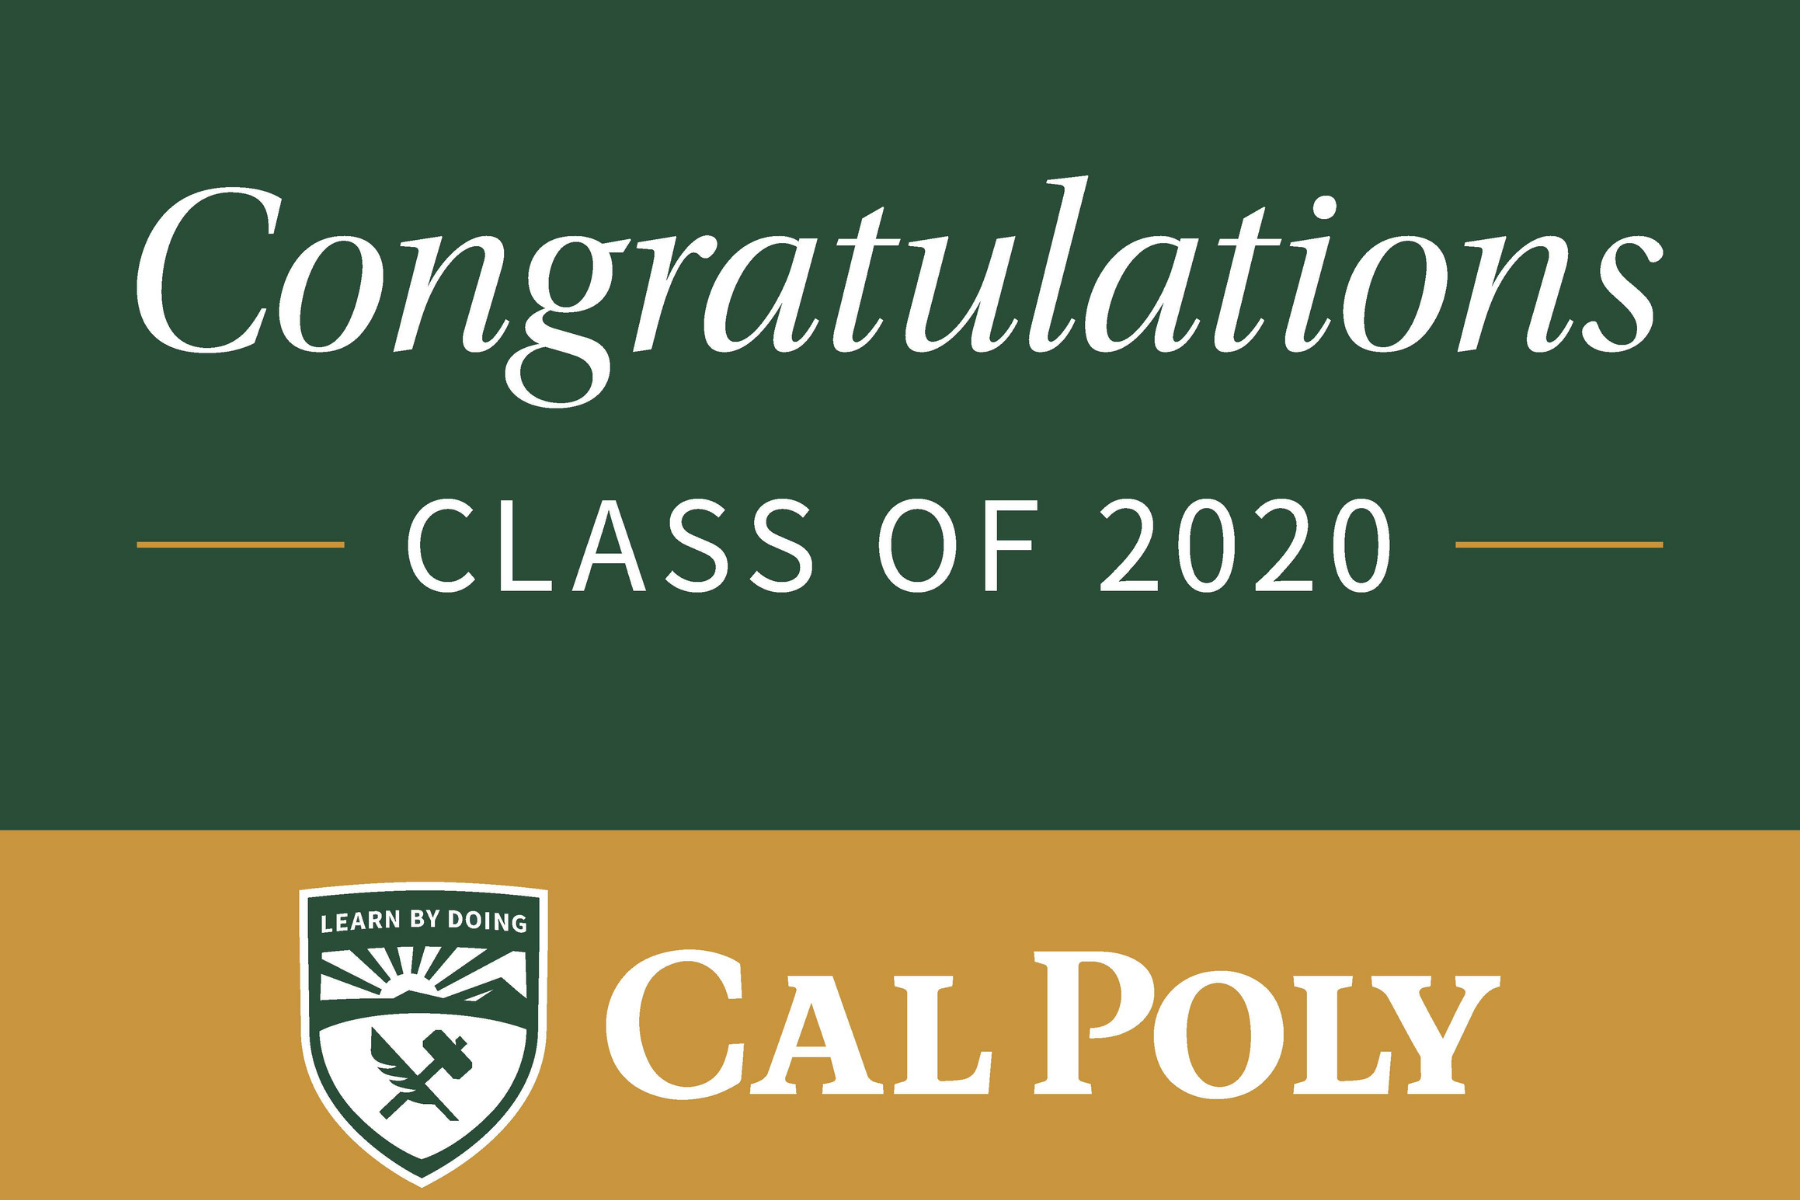 Congratulations Class of 2020 white text on green and gold background with Cal Poly logo